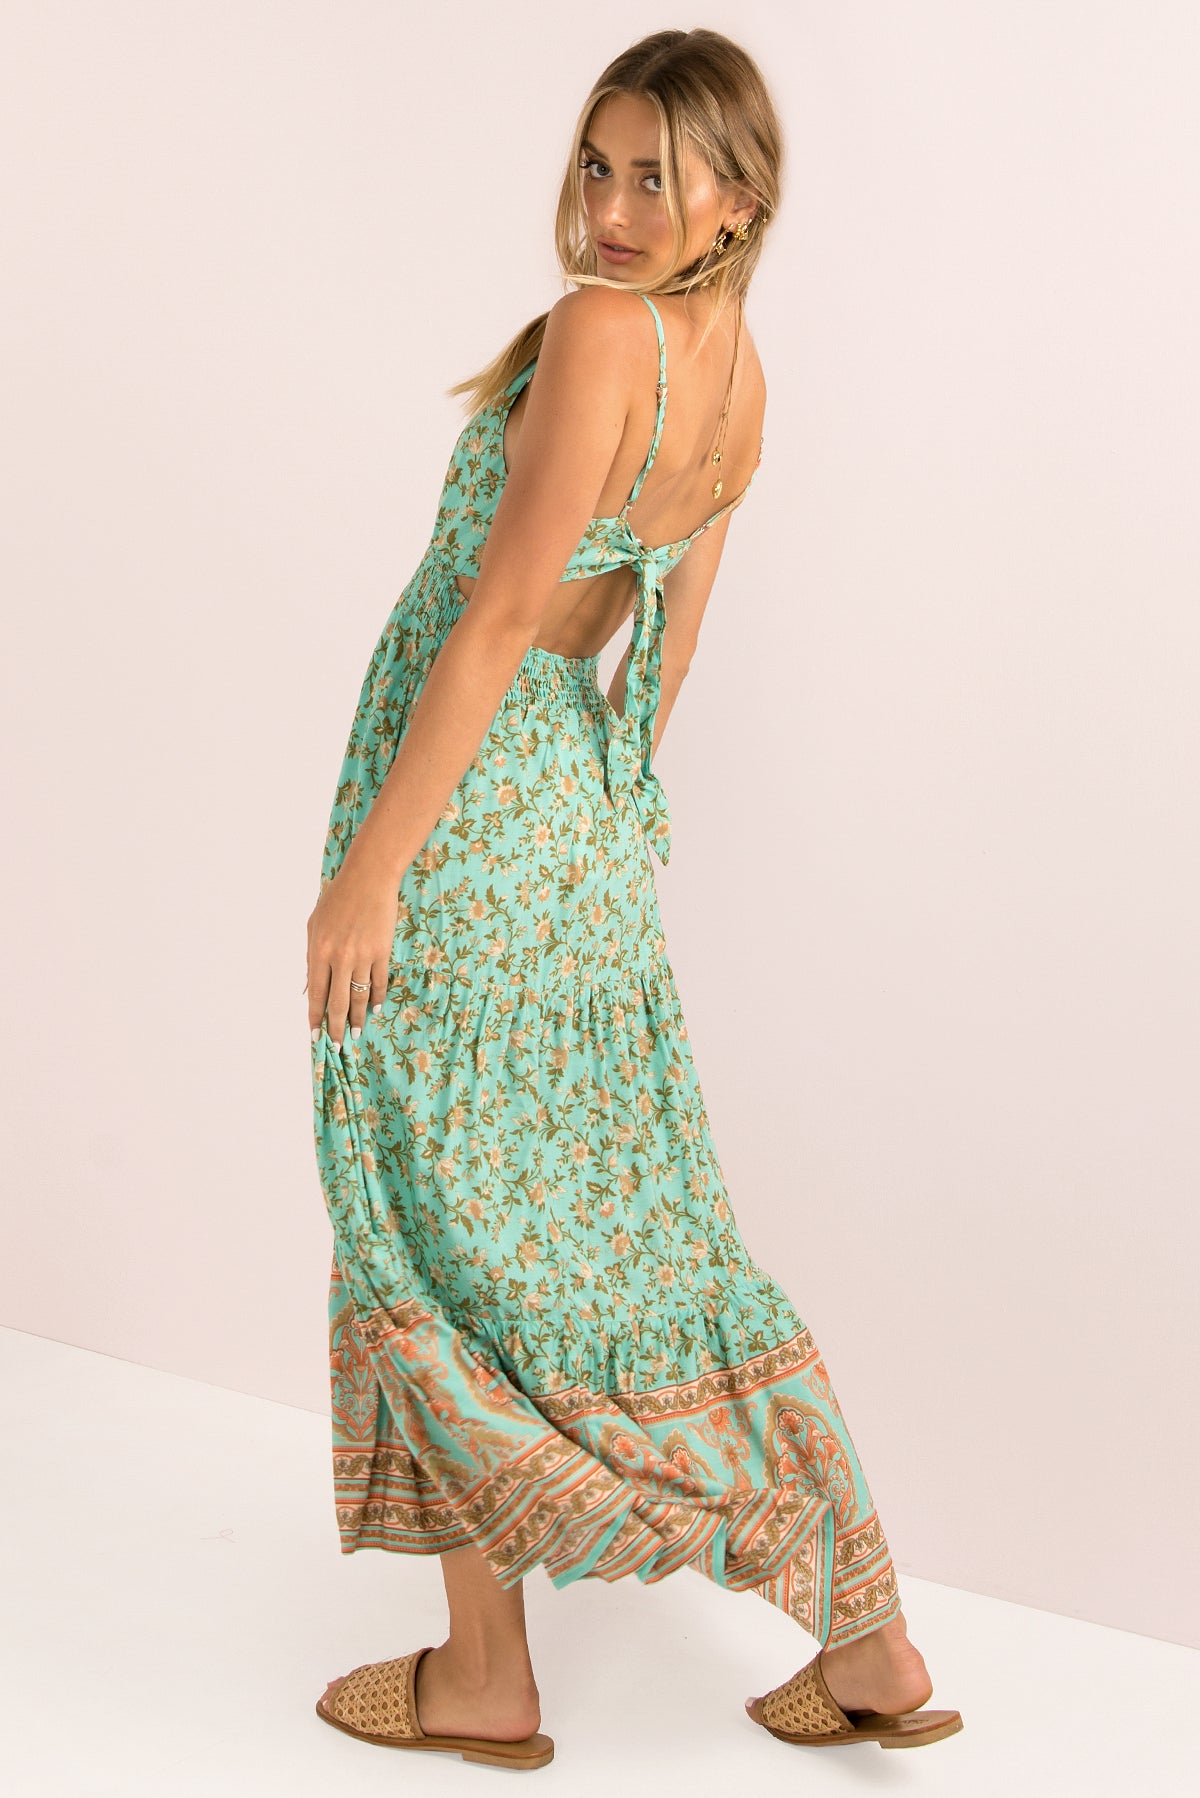 Fable Dress / Mint